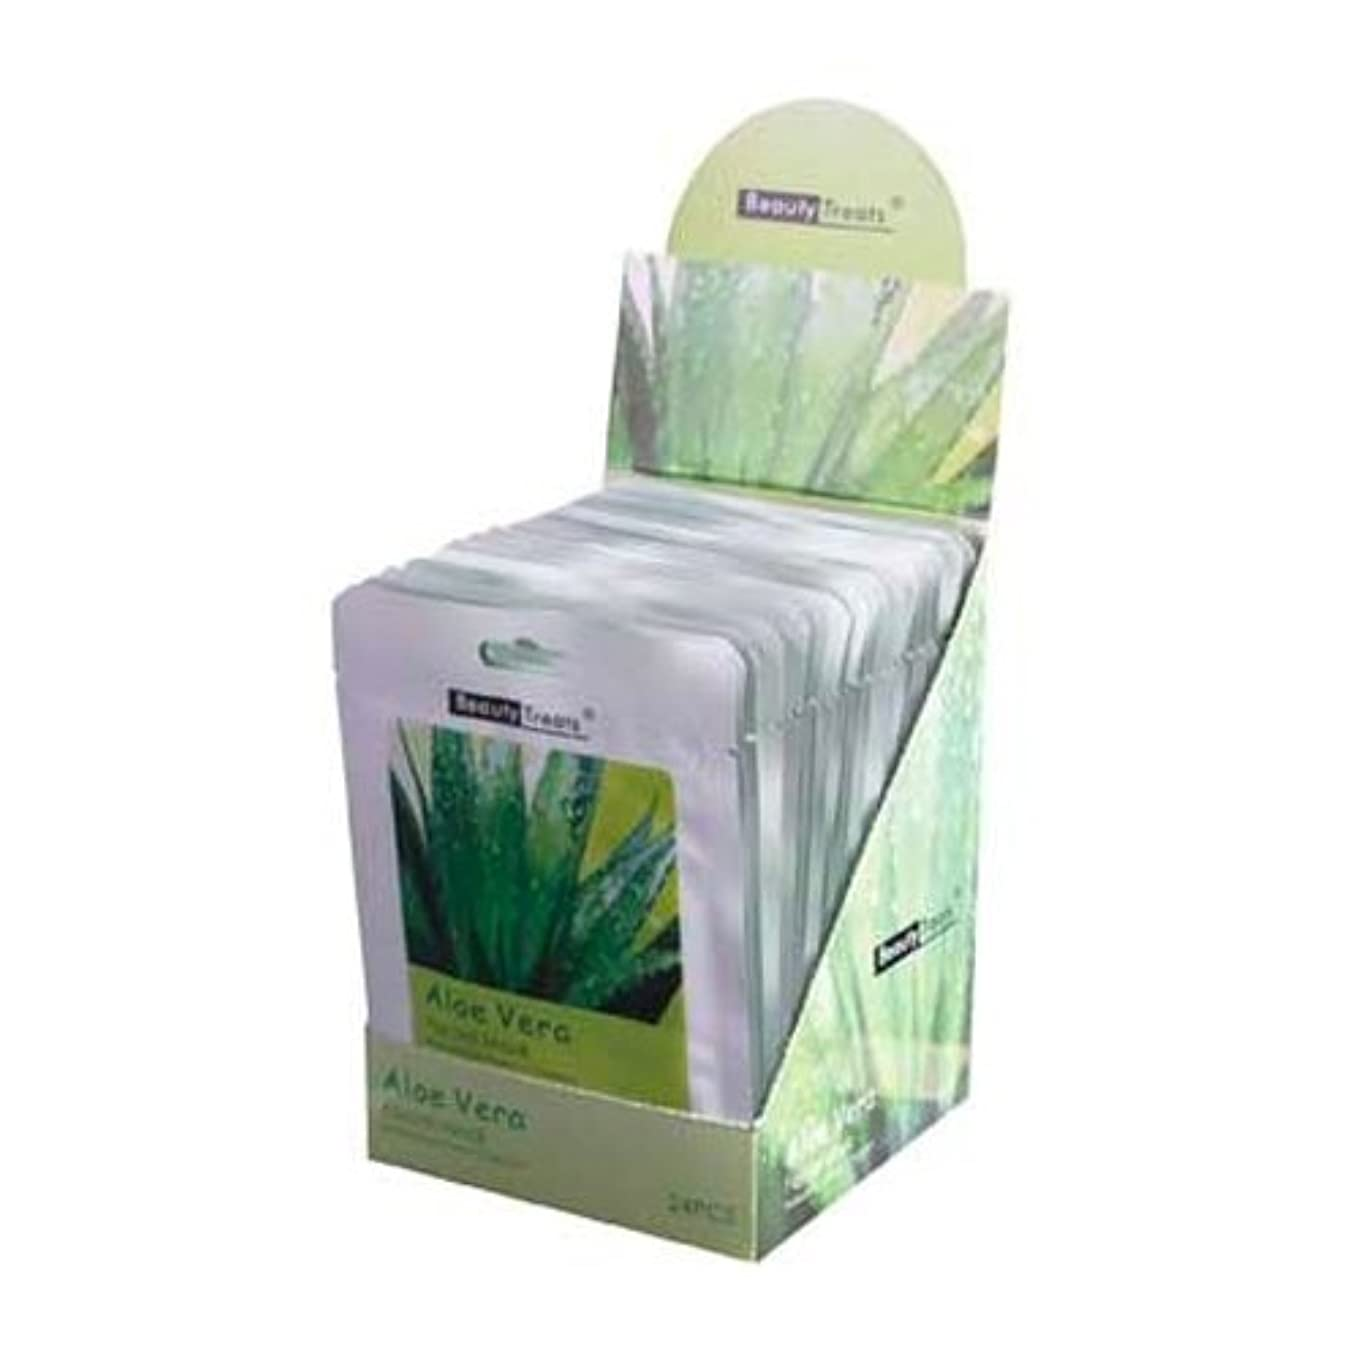 嘆願スリットしなければならないBEAUTY TREATS Facial Mask Refreshing Vitamin C Solution - Aloe Vera - Display Box 24 Pieces (並行輸入品)